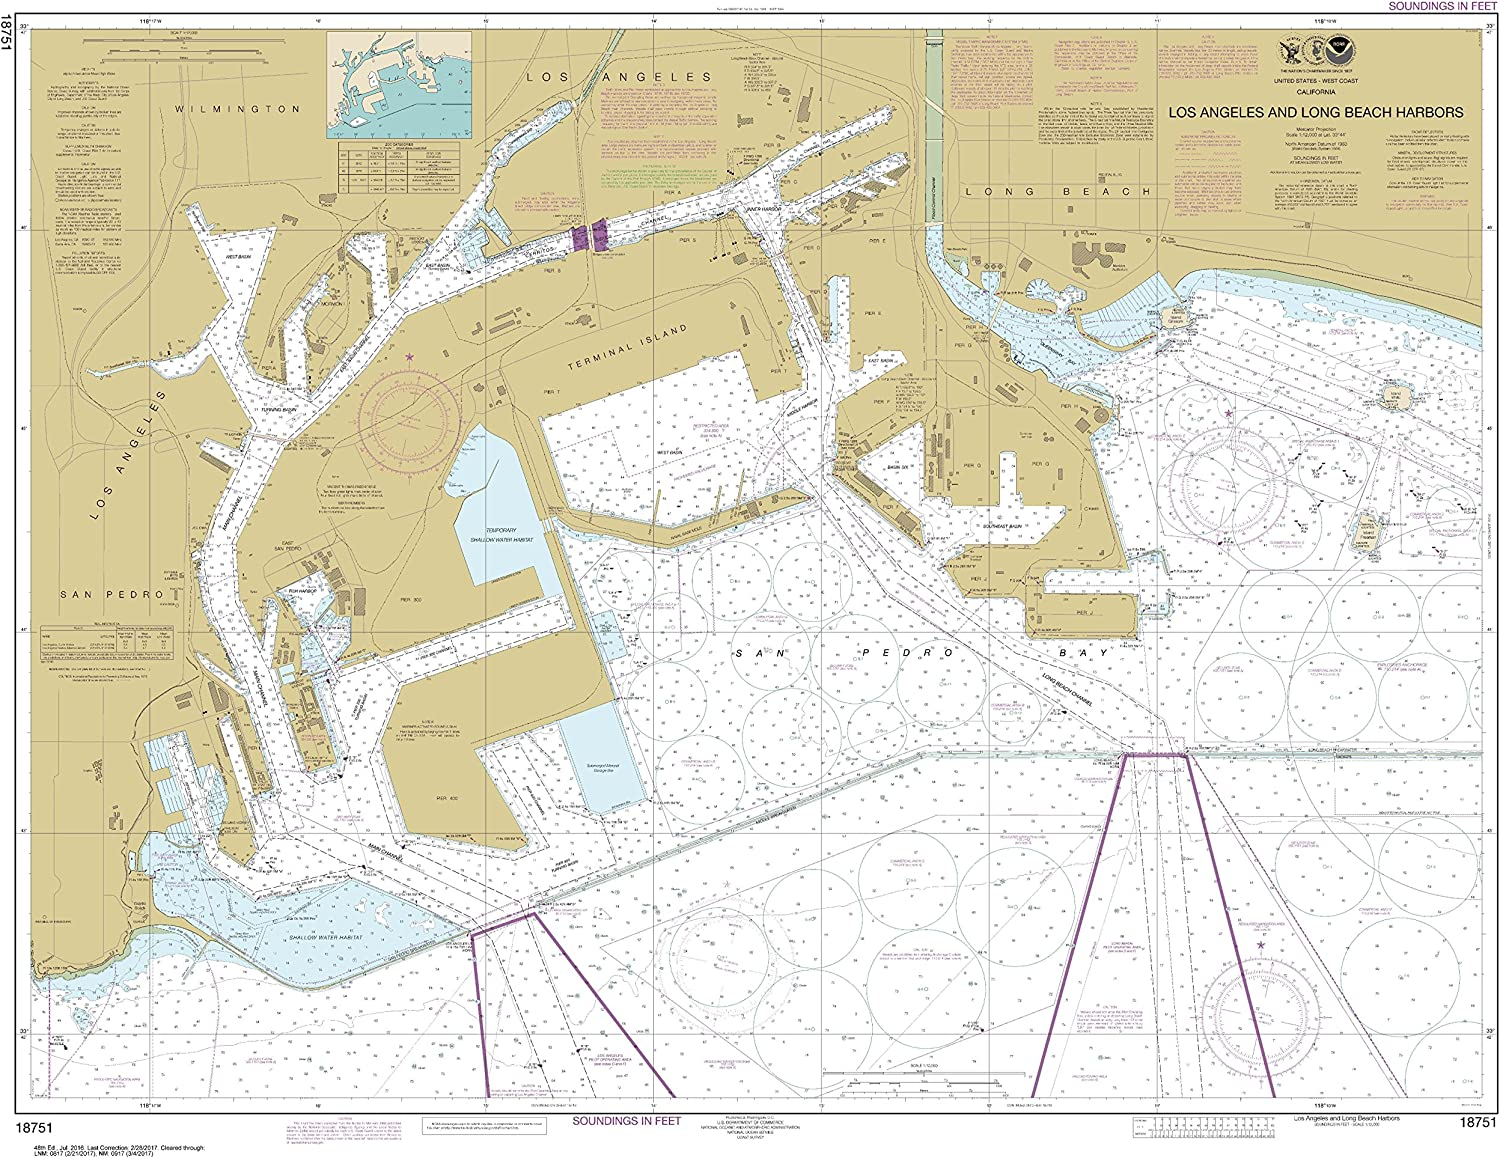 NOAA Chart 18751 Los Angeles and Long Beach Harbors 35.18 X 46.45 Water-Resistant Chart